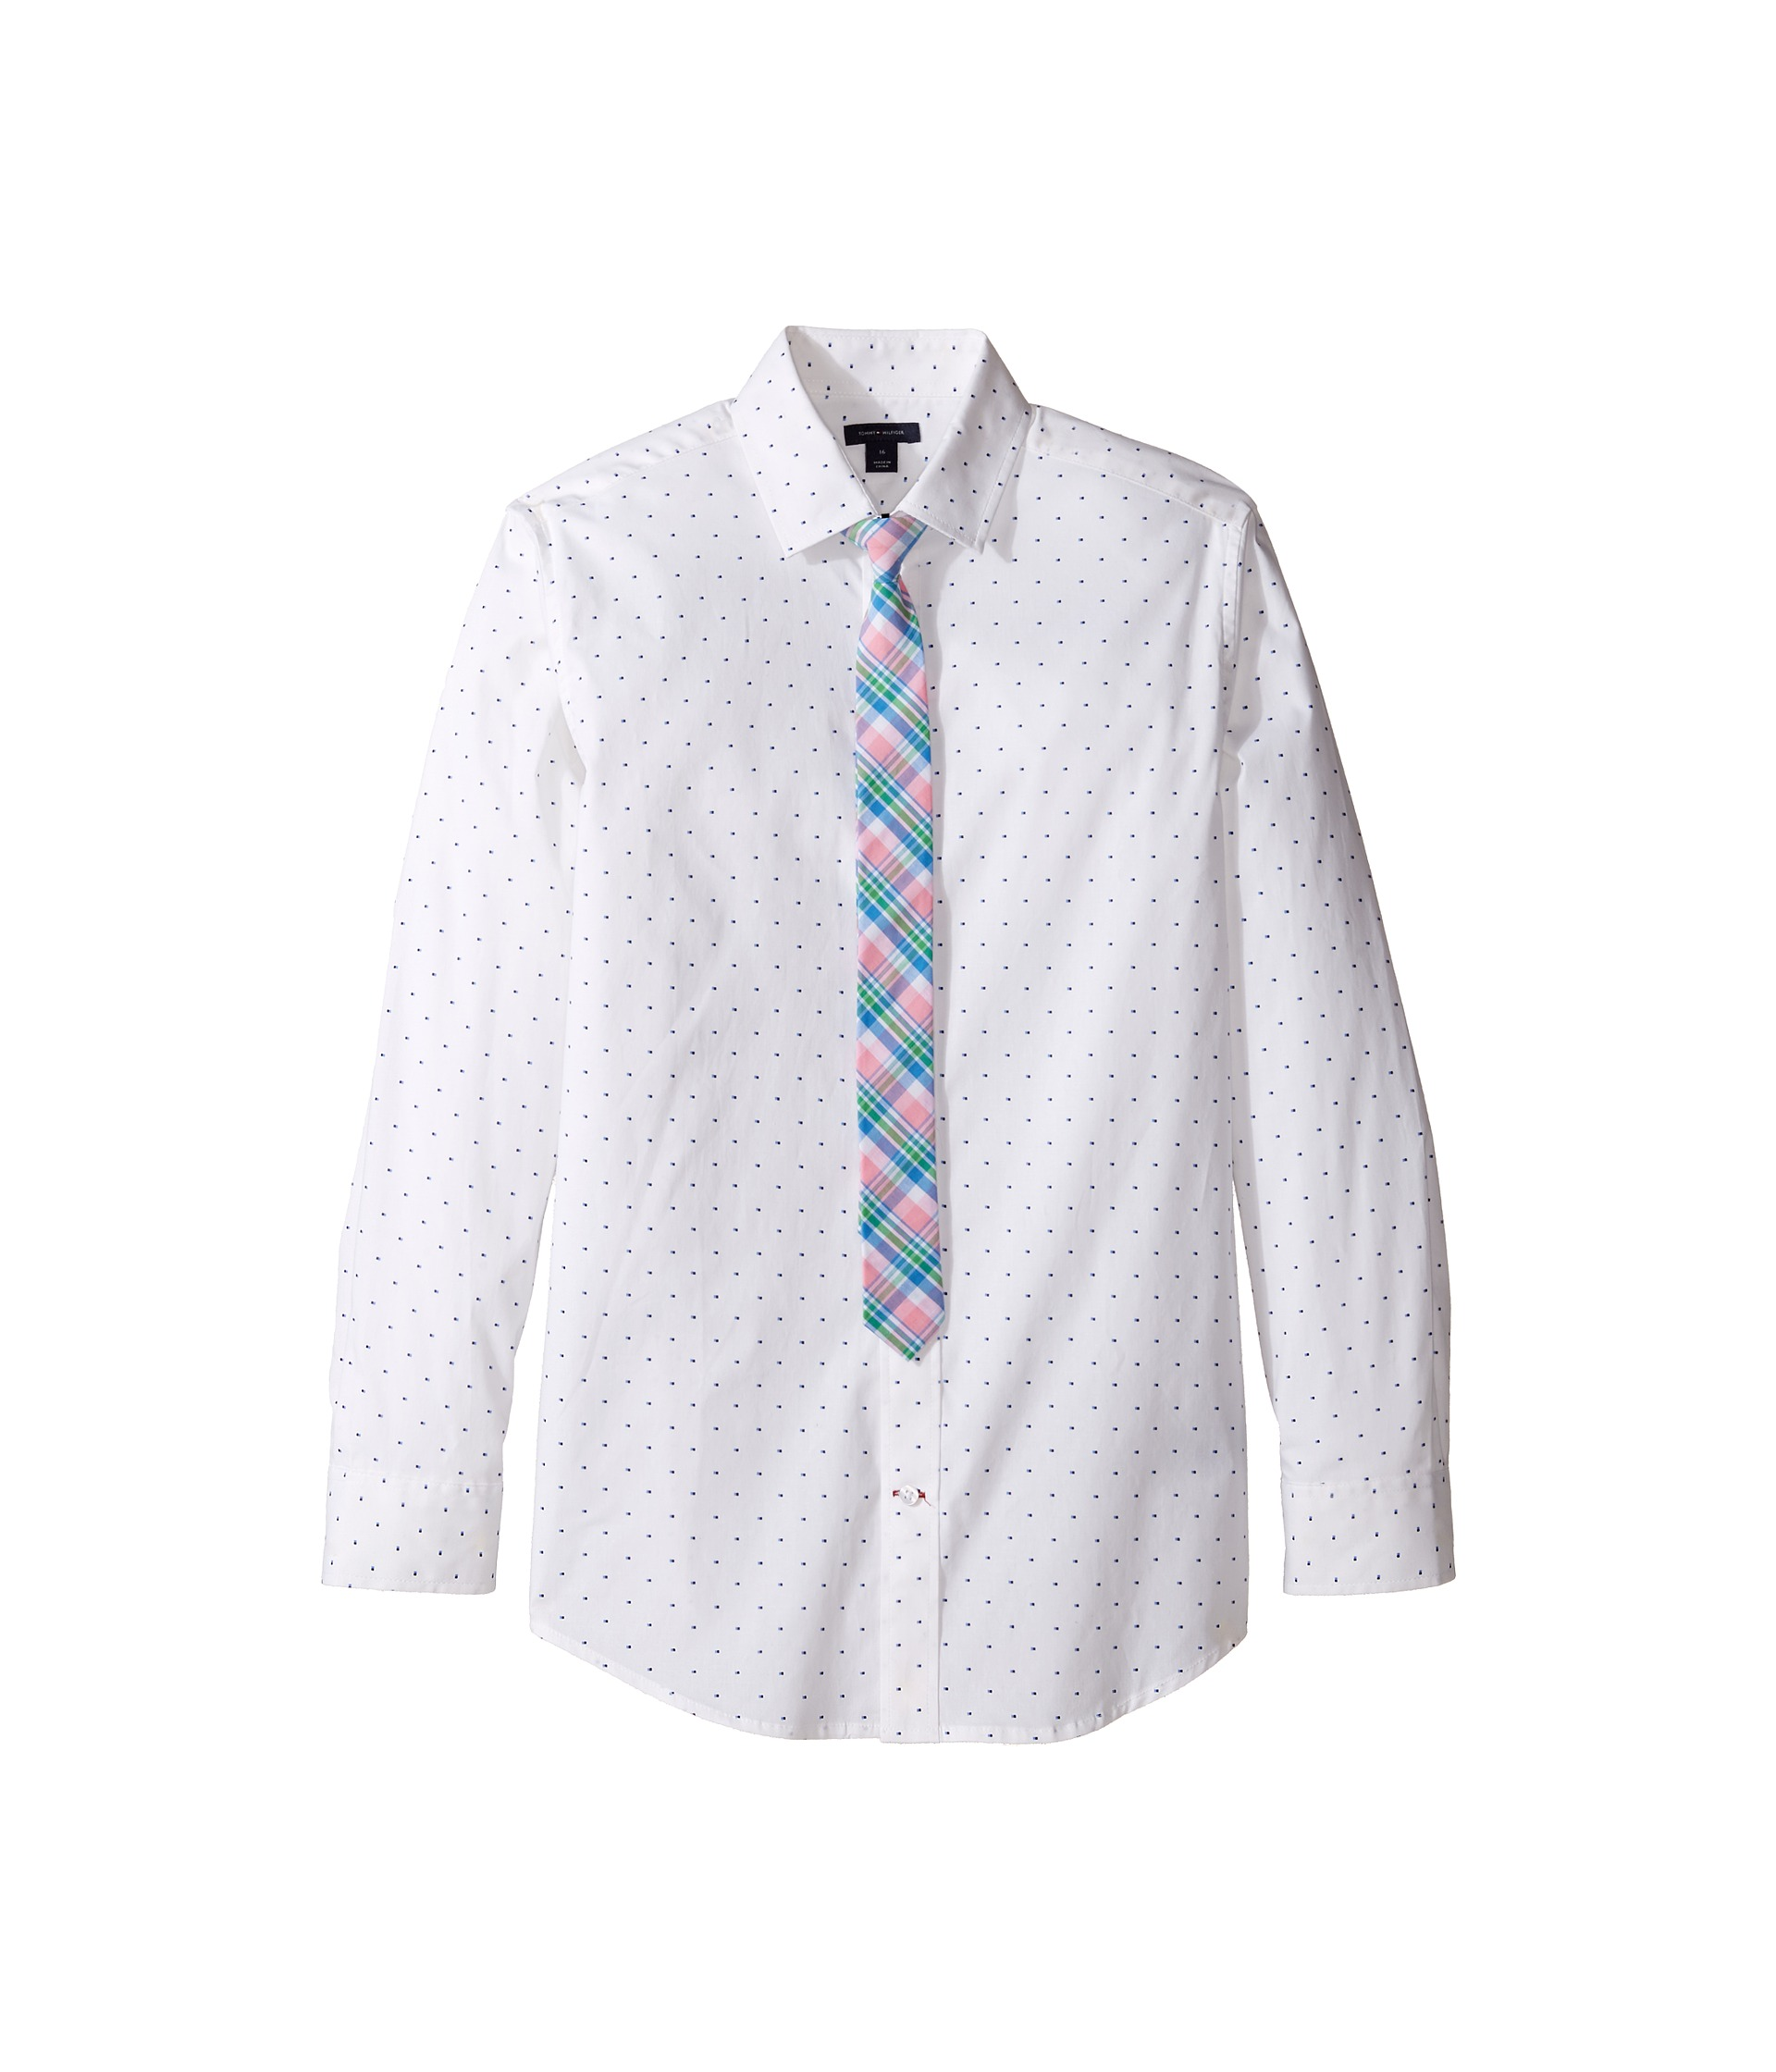 Tommy Hilfiger Kids Long Sleeve Print Shirt with Necktie